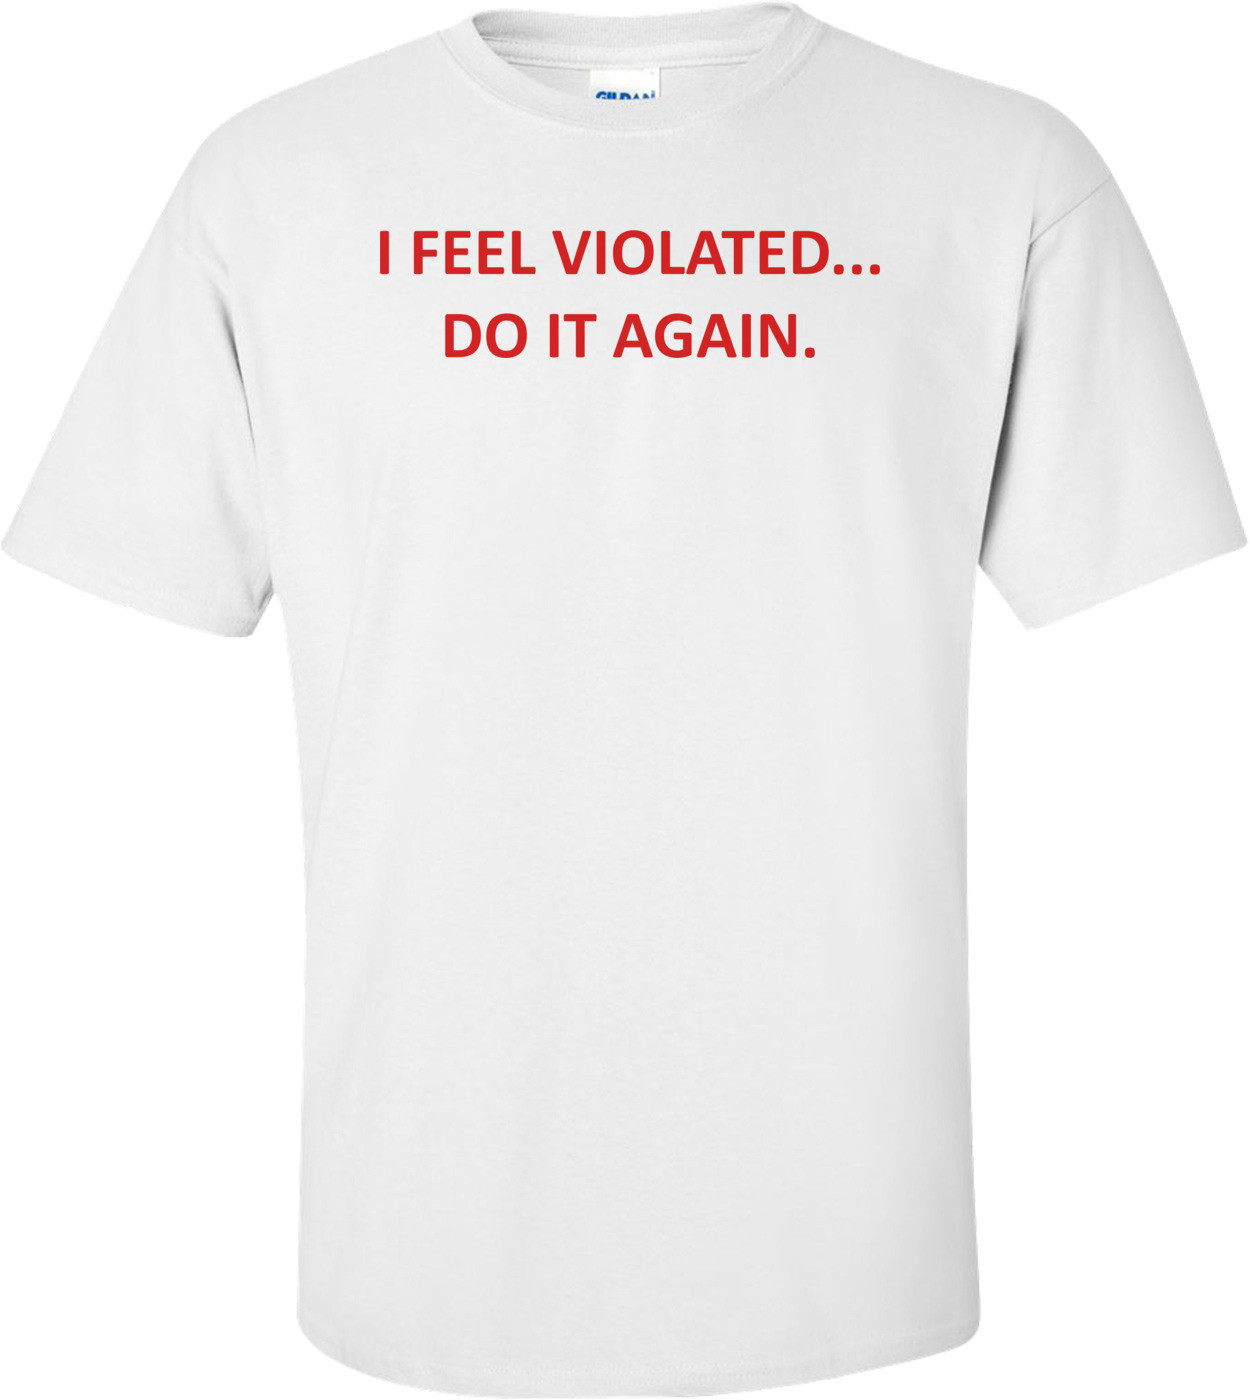 I FEEL VIOLATED... DO IT AGAIN. Shirt